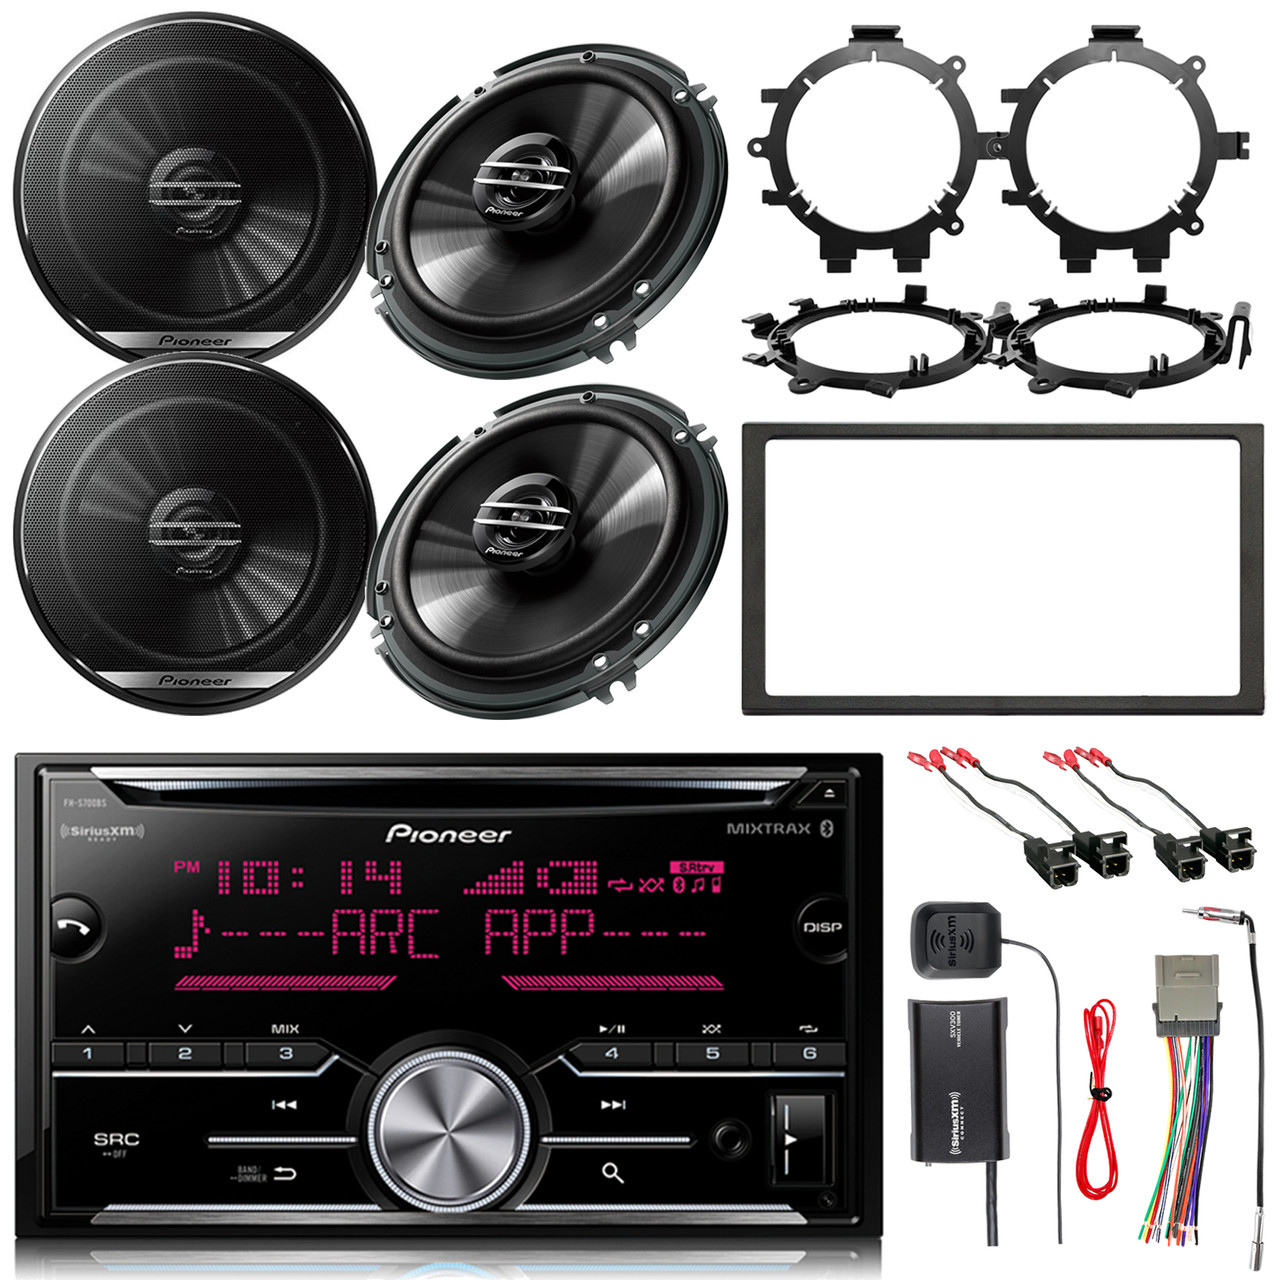 pioneer 2din cd bluetooth receiver 4x 6 5 speakers dash kit stereo wiring harness antenna adapter siriusxm radio tuner 4x speaker wire harness  [ 1280 x 1280 Pixel ]